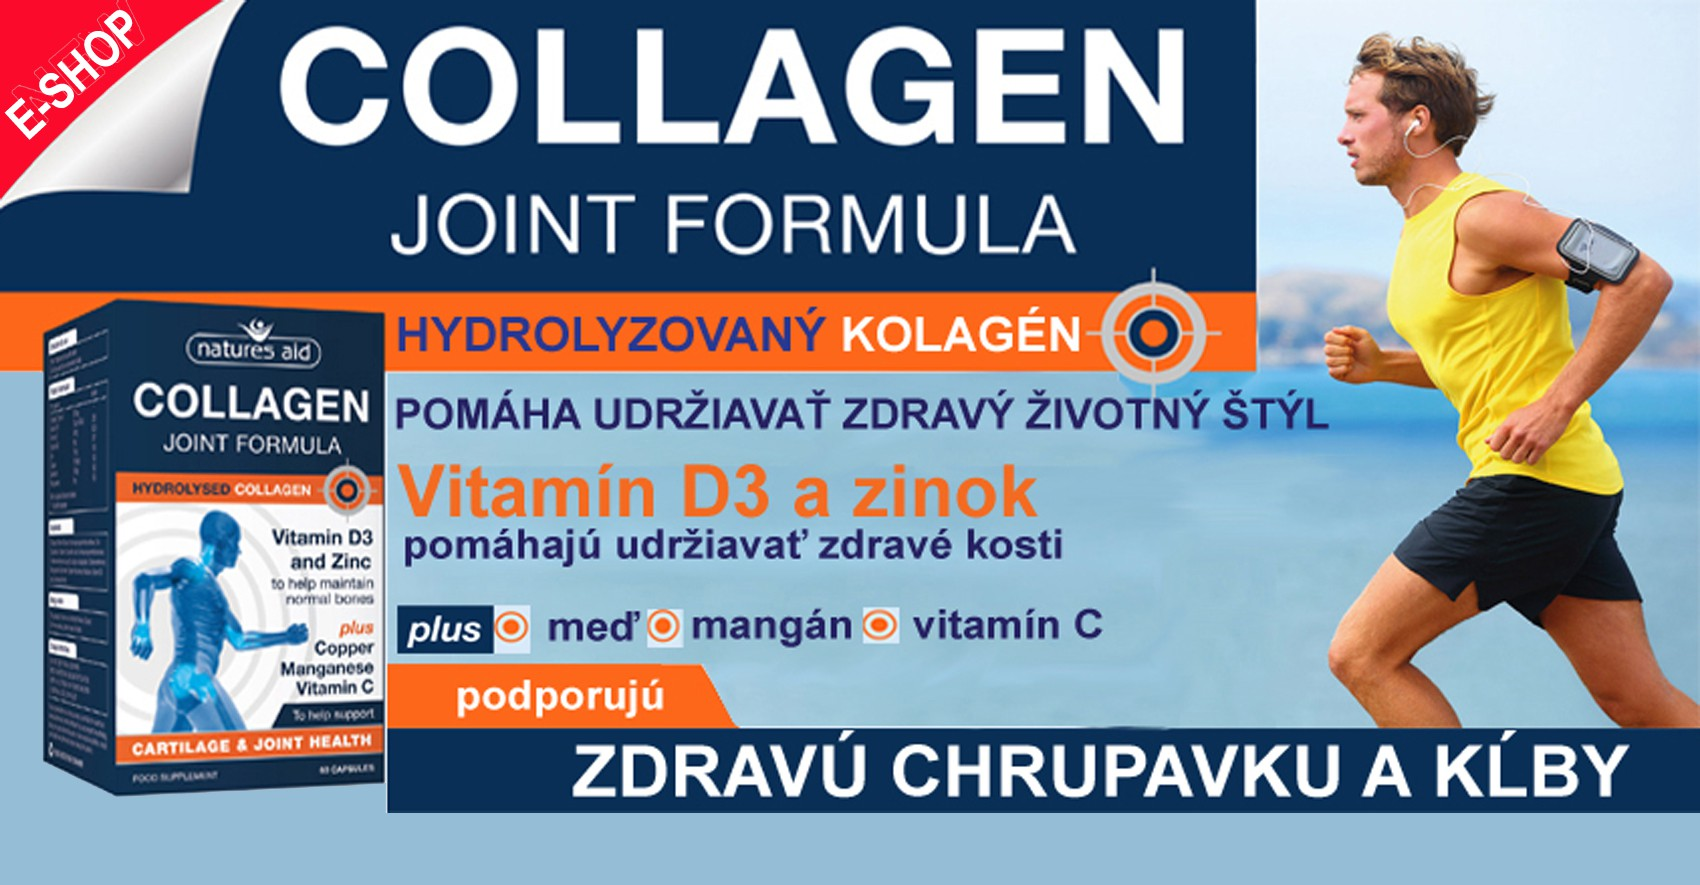 COLLAGEN JOINT FORMULA